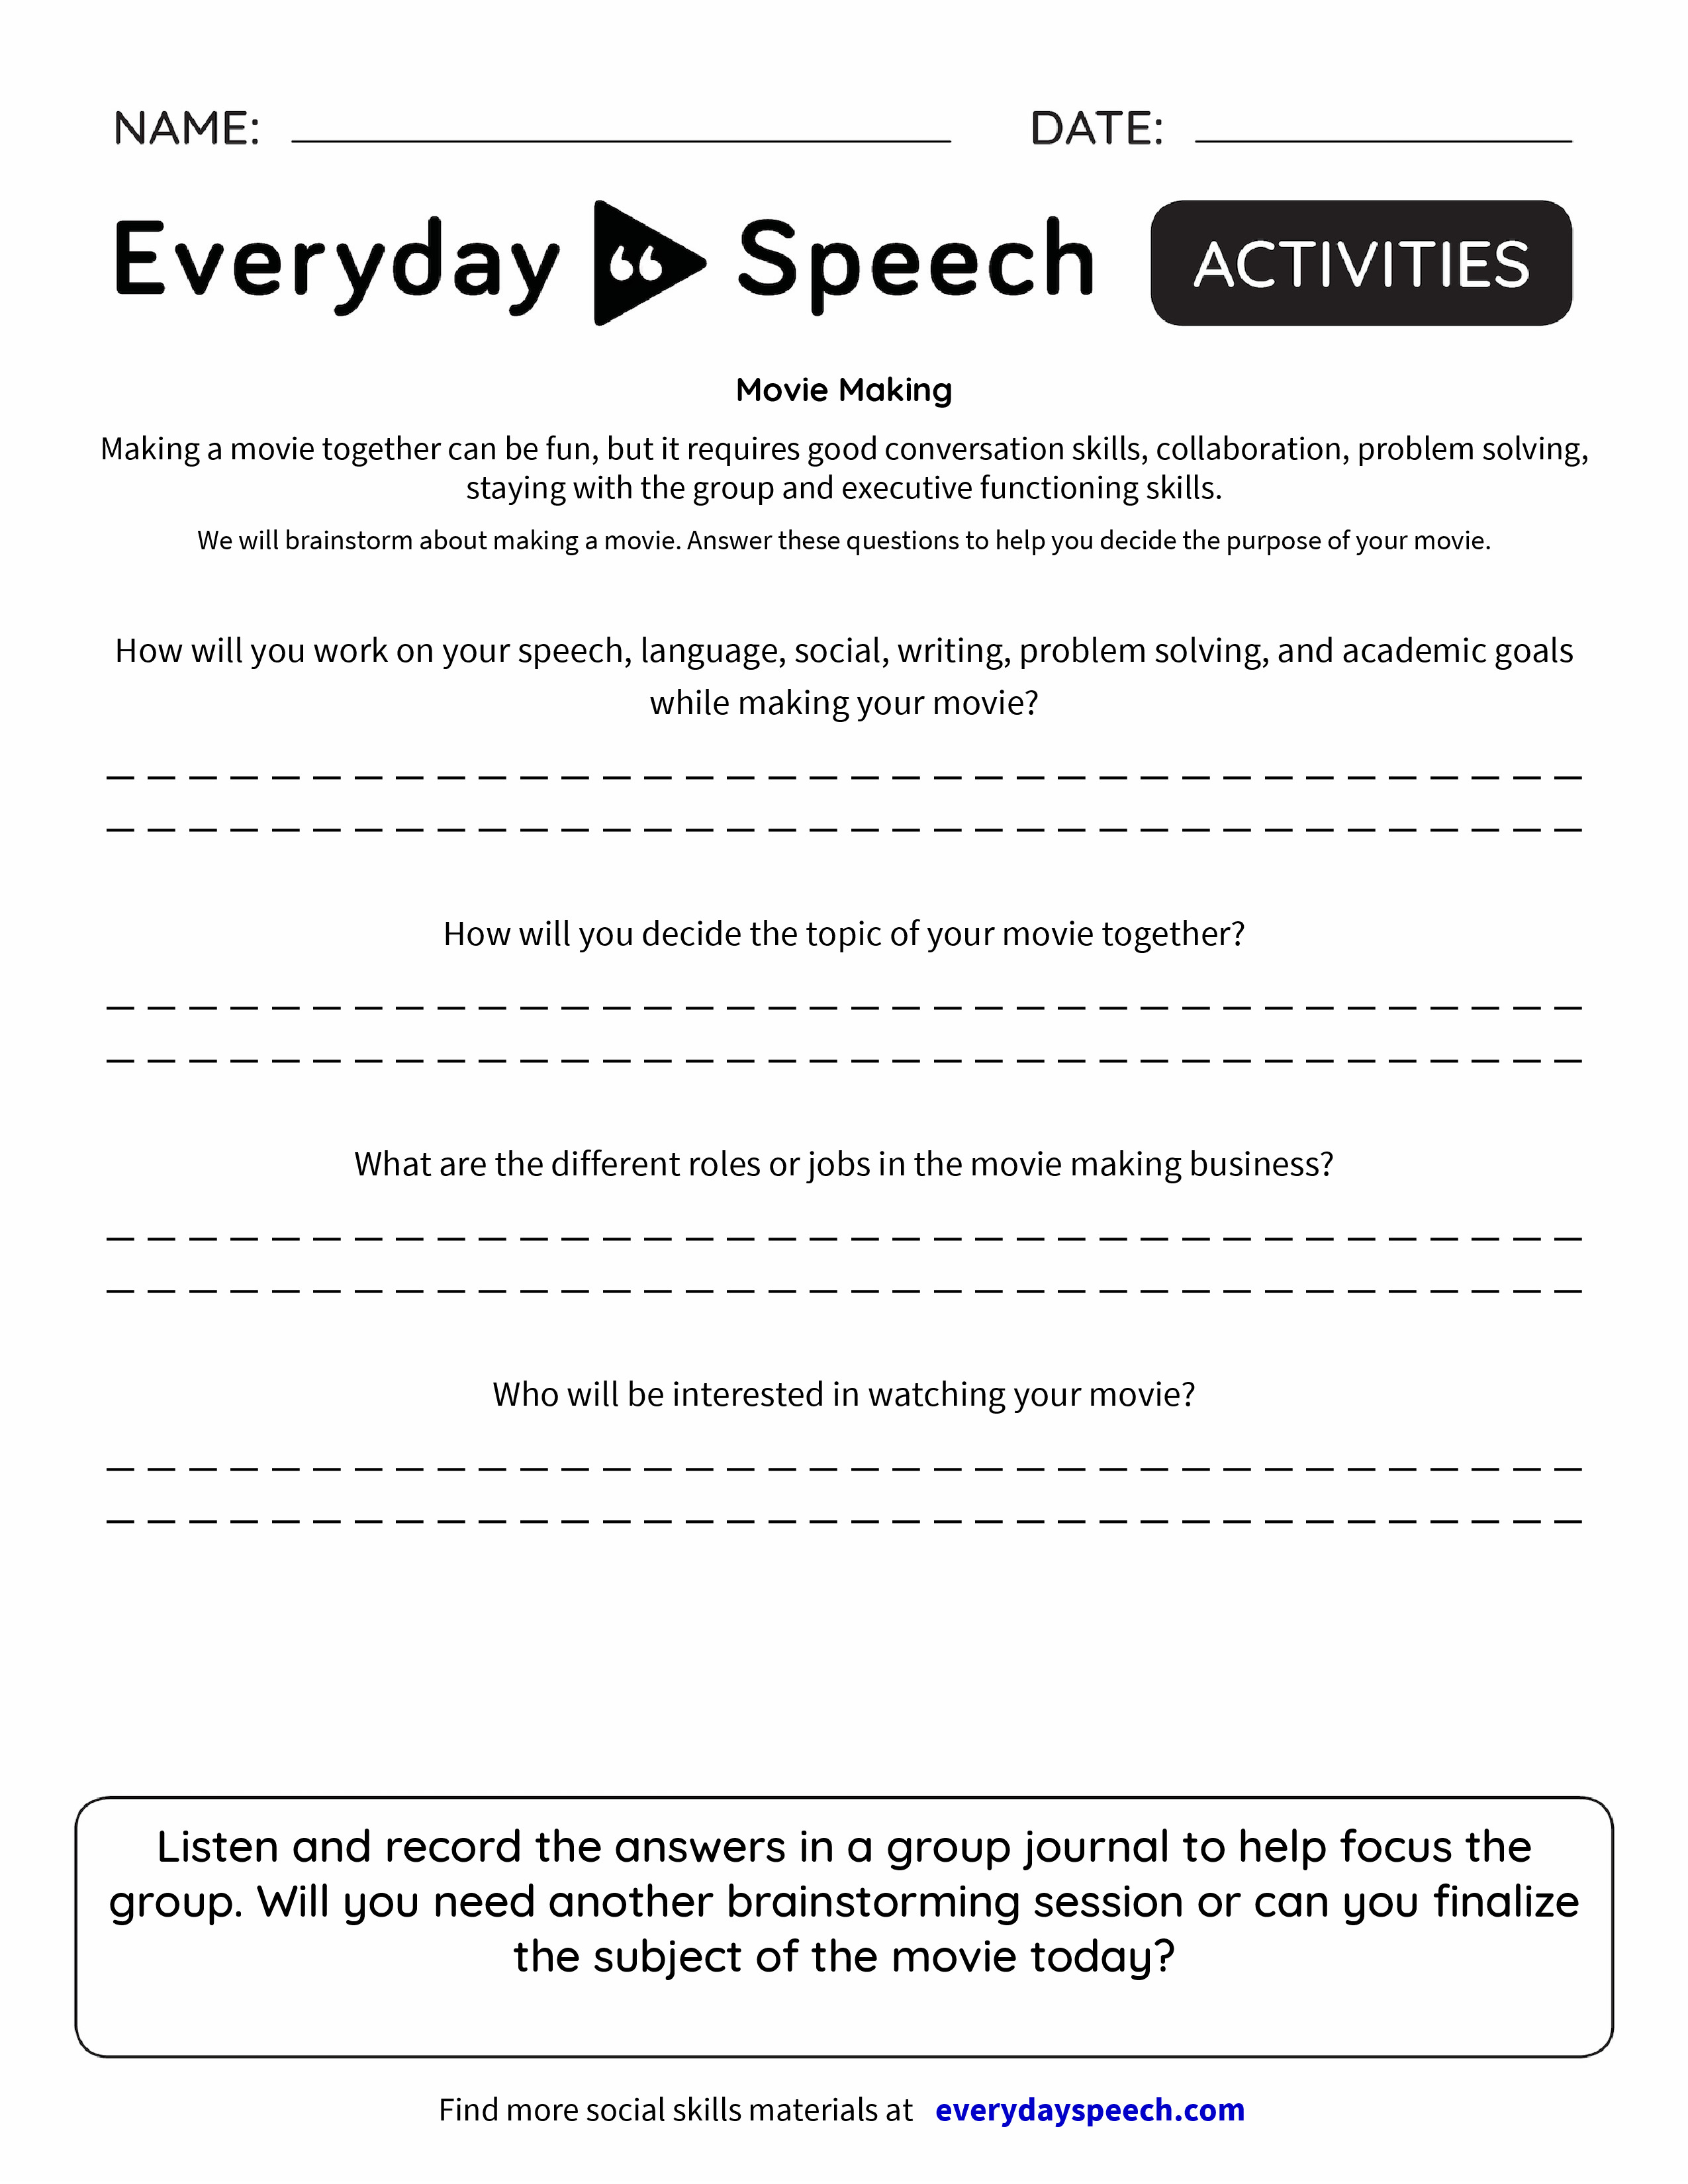 worksheet Collaborative Problem Solving Worksheet movie making everyday speech preview